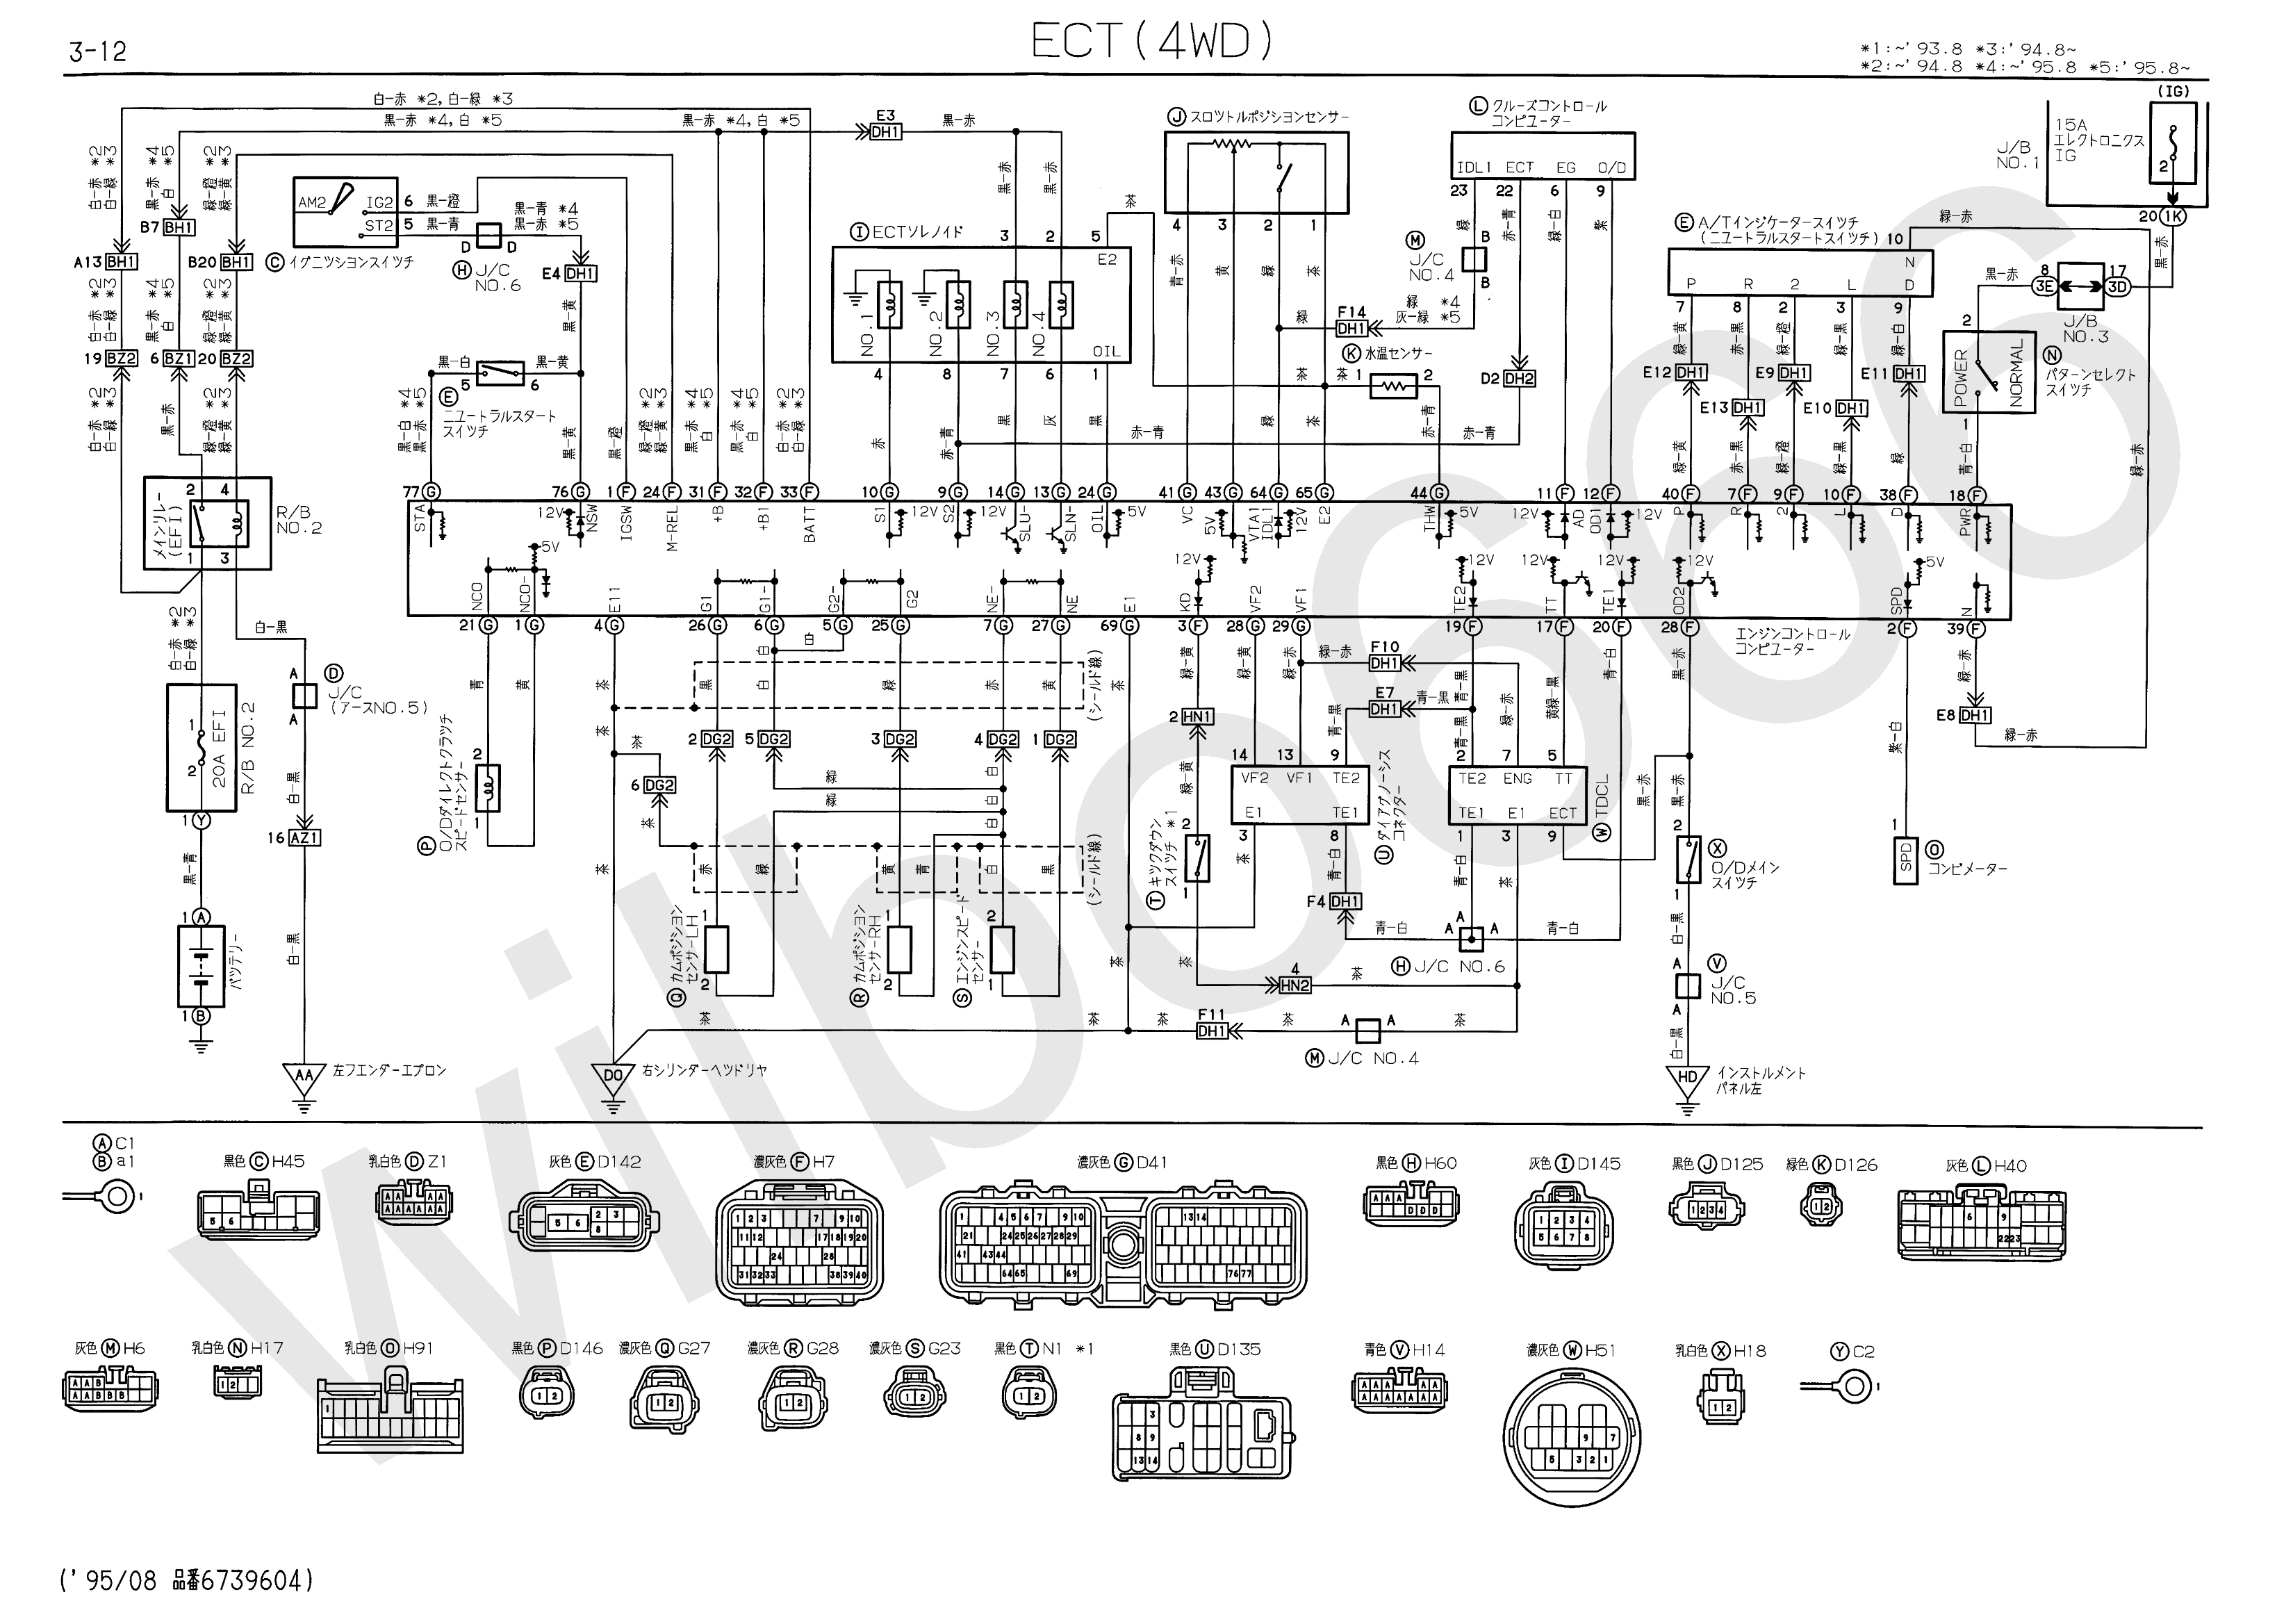 JZS14%23%2C UZS14%23 Electrical Wiring Diagram 6739604 3 12?resize\\\\\\\\\\\\\\\\\\\\\\\\\\\\\\\\\\\\\\\\\\\\\\\\\\\\\\\\\\\\\\\\\\\\\\\\\\\\\\\\\\\\\\\\\\\\\\\\\\\\\\\\\\\\\\\\\\\\\\\\\\\\\\\\\\\\\\\\\\\\\\\\\\\\\\\\\\\\\\\\\\\\\\\\\\\\\\\\\\\\\\\\\\\\\\\\\\\\\\\\\\\\\\\\\\\\\\\\\\\\\\\=665%2C471 electric forklift wiring diagram electric wiring diagrams collection  at suagrazia.org